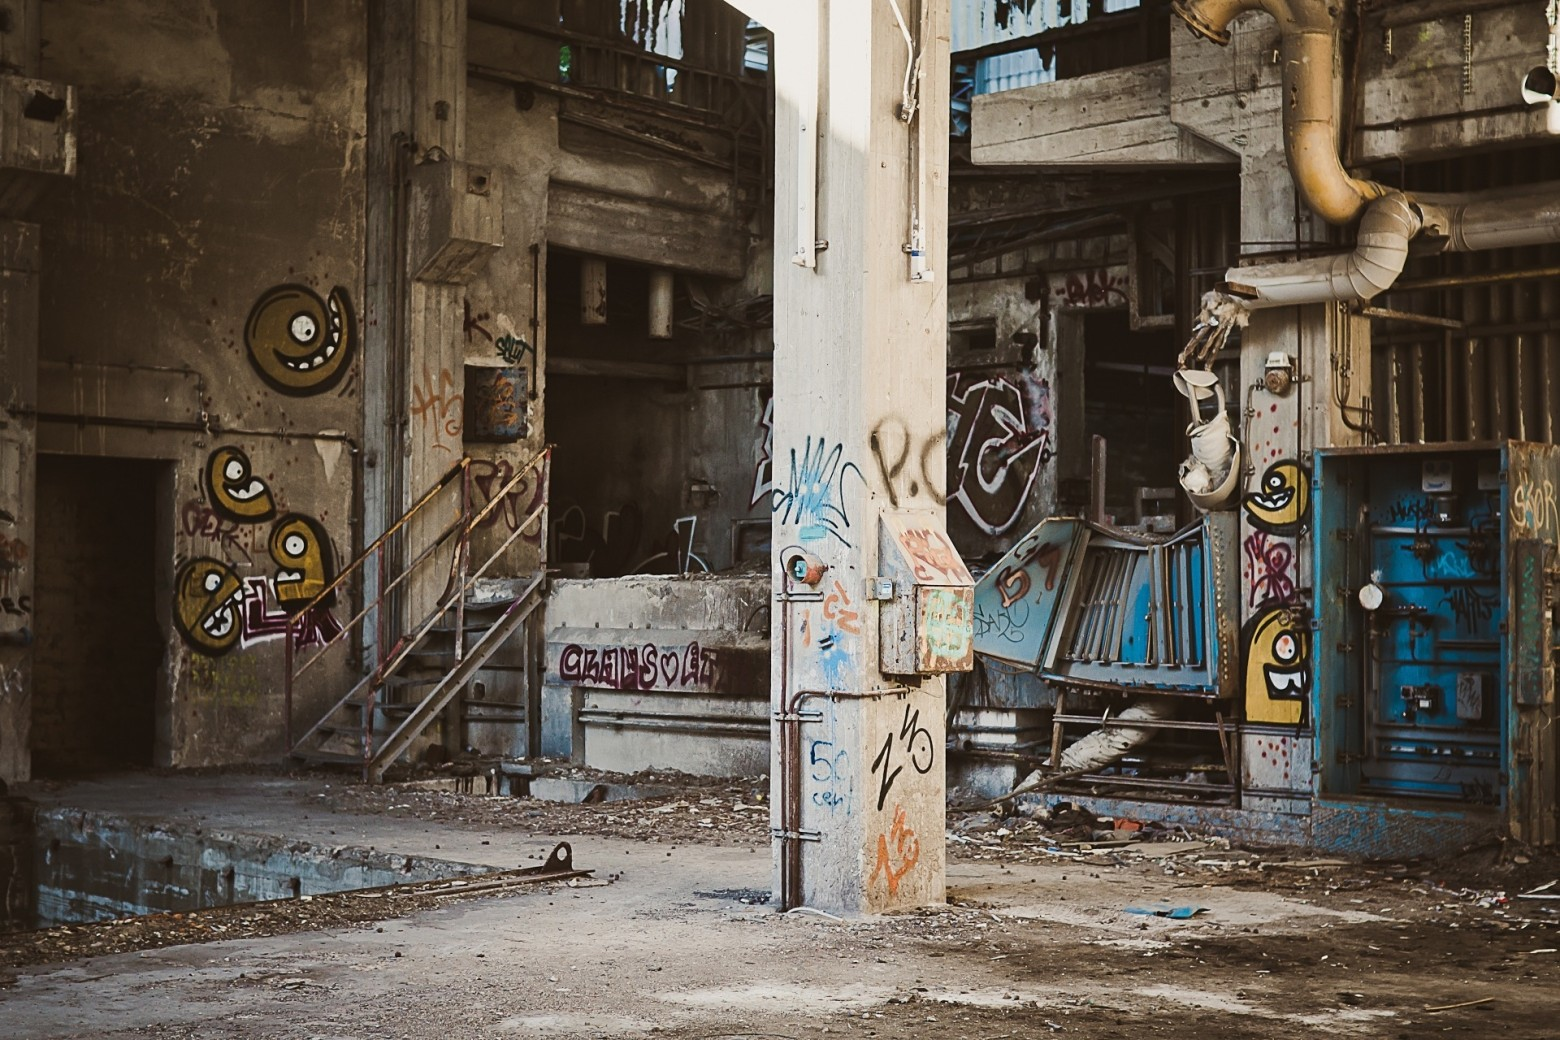 hangar usine d saffect e graffiti art de rue images photos gratuites libres de droits images. Black Bedroom Furniture Sets. Home Design Ideas